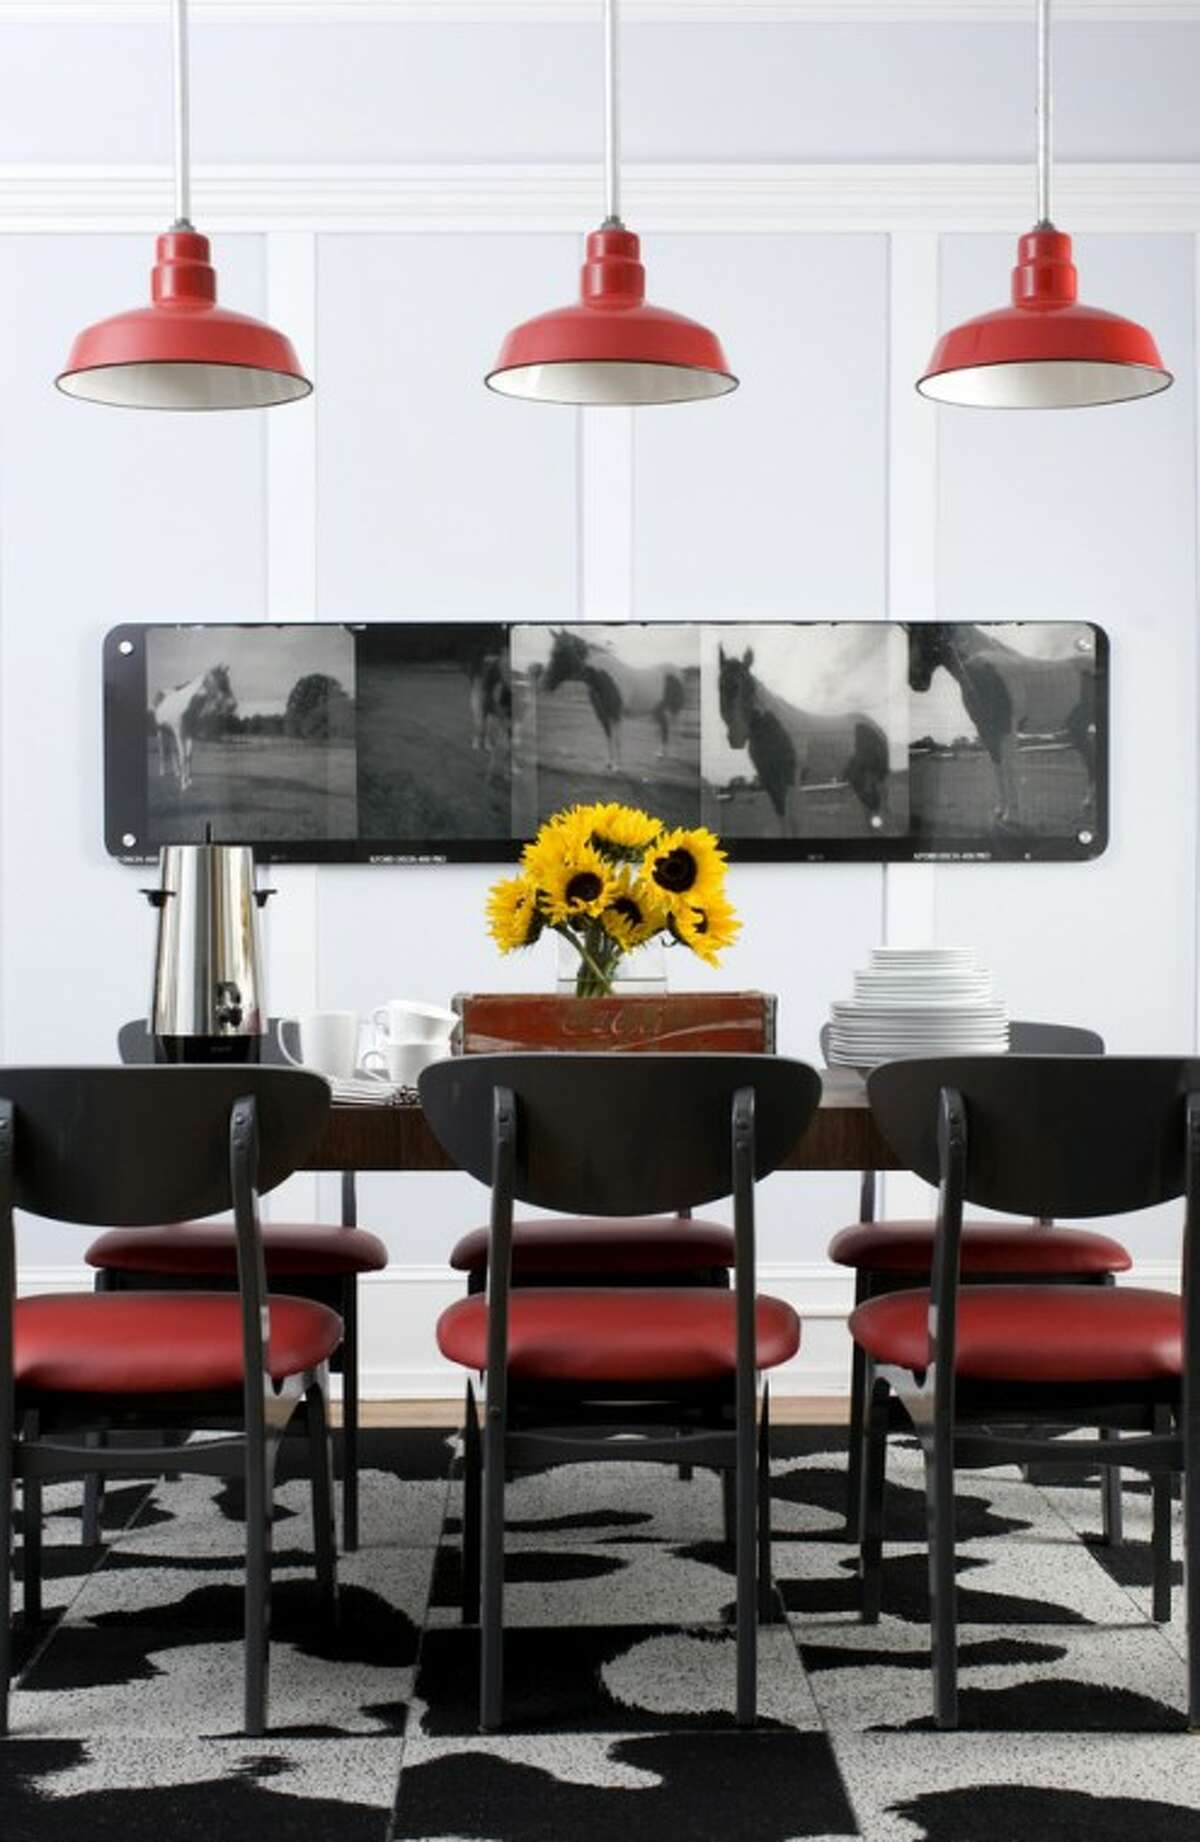 In this undated handout image released by Brian Patrick Flynn, the dining room designed by Brian Patrick Flynn demonstrates how the designer balances space vertically by grounding a room with pendant lighting. (AP Photo/Brian Patrick Flynn Designs, Sarah Dorio)